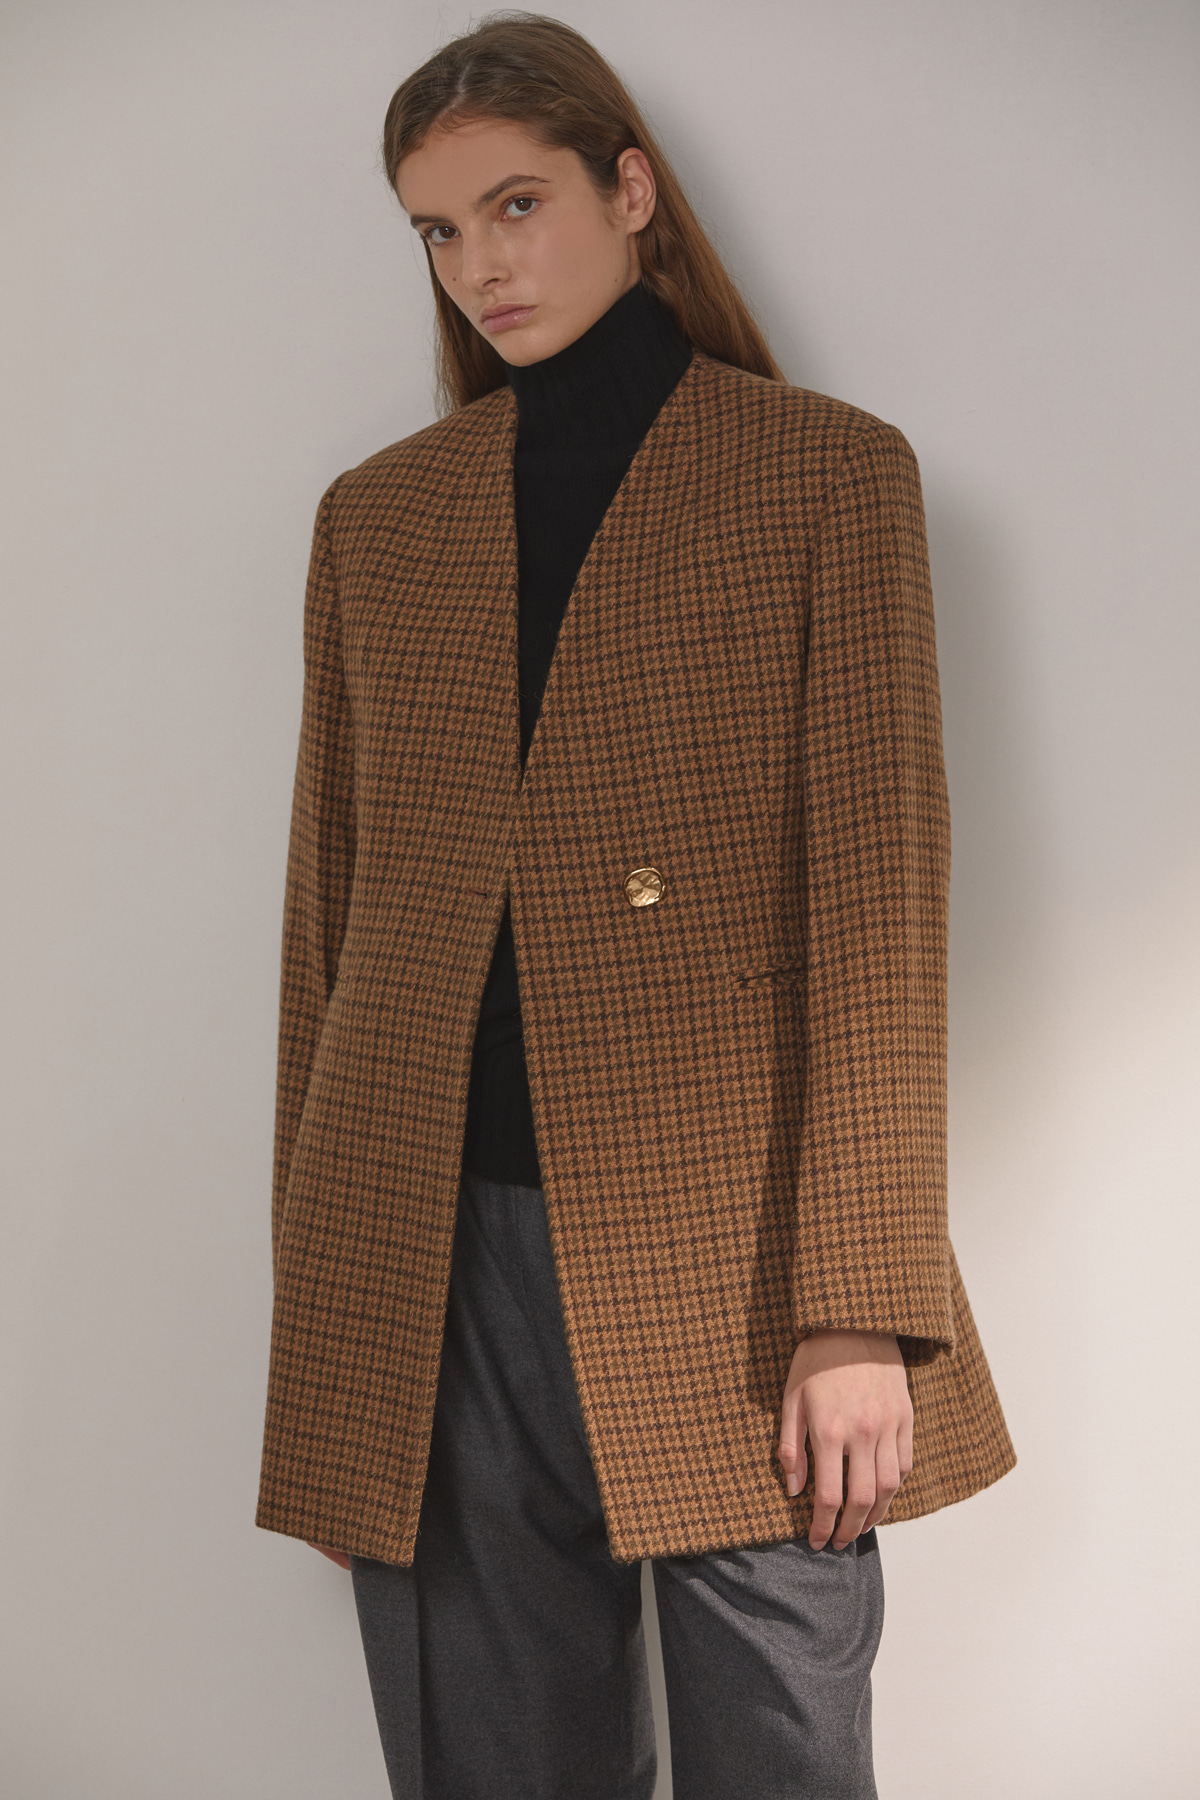 DEMERE COLLARLESS BELTED JACKET (CHECK BROWN)